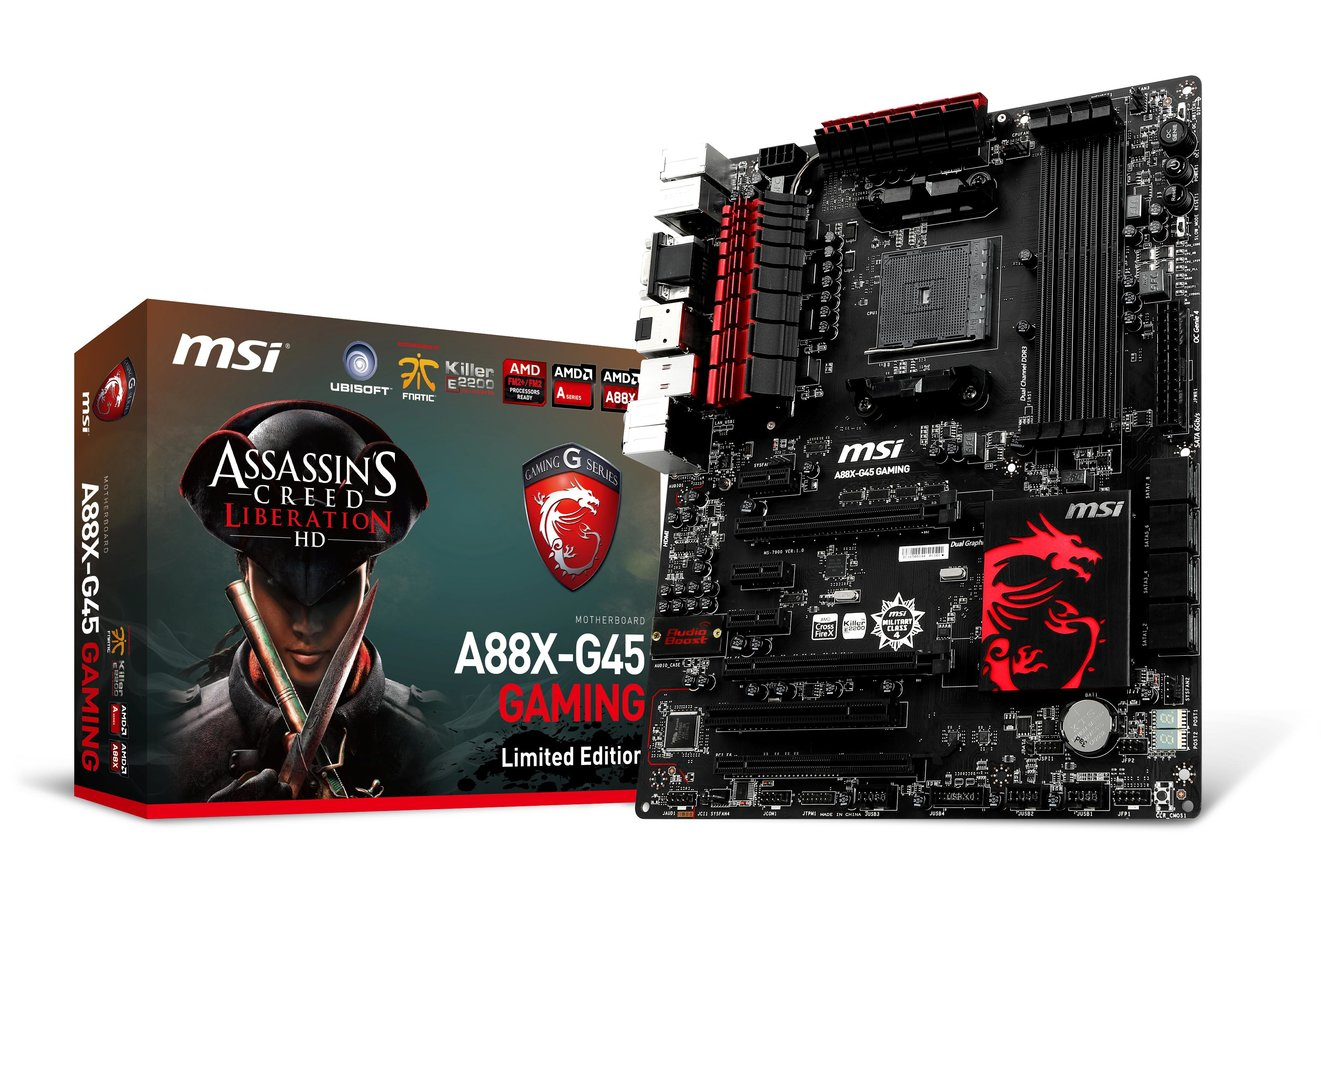 MSI A88X-G45 Gaming (Assassin's Creed LHD)